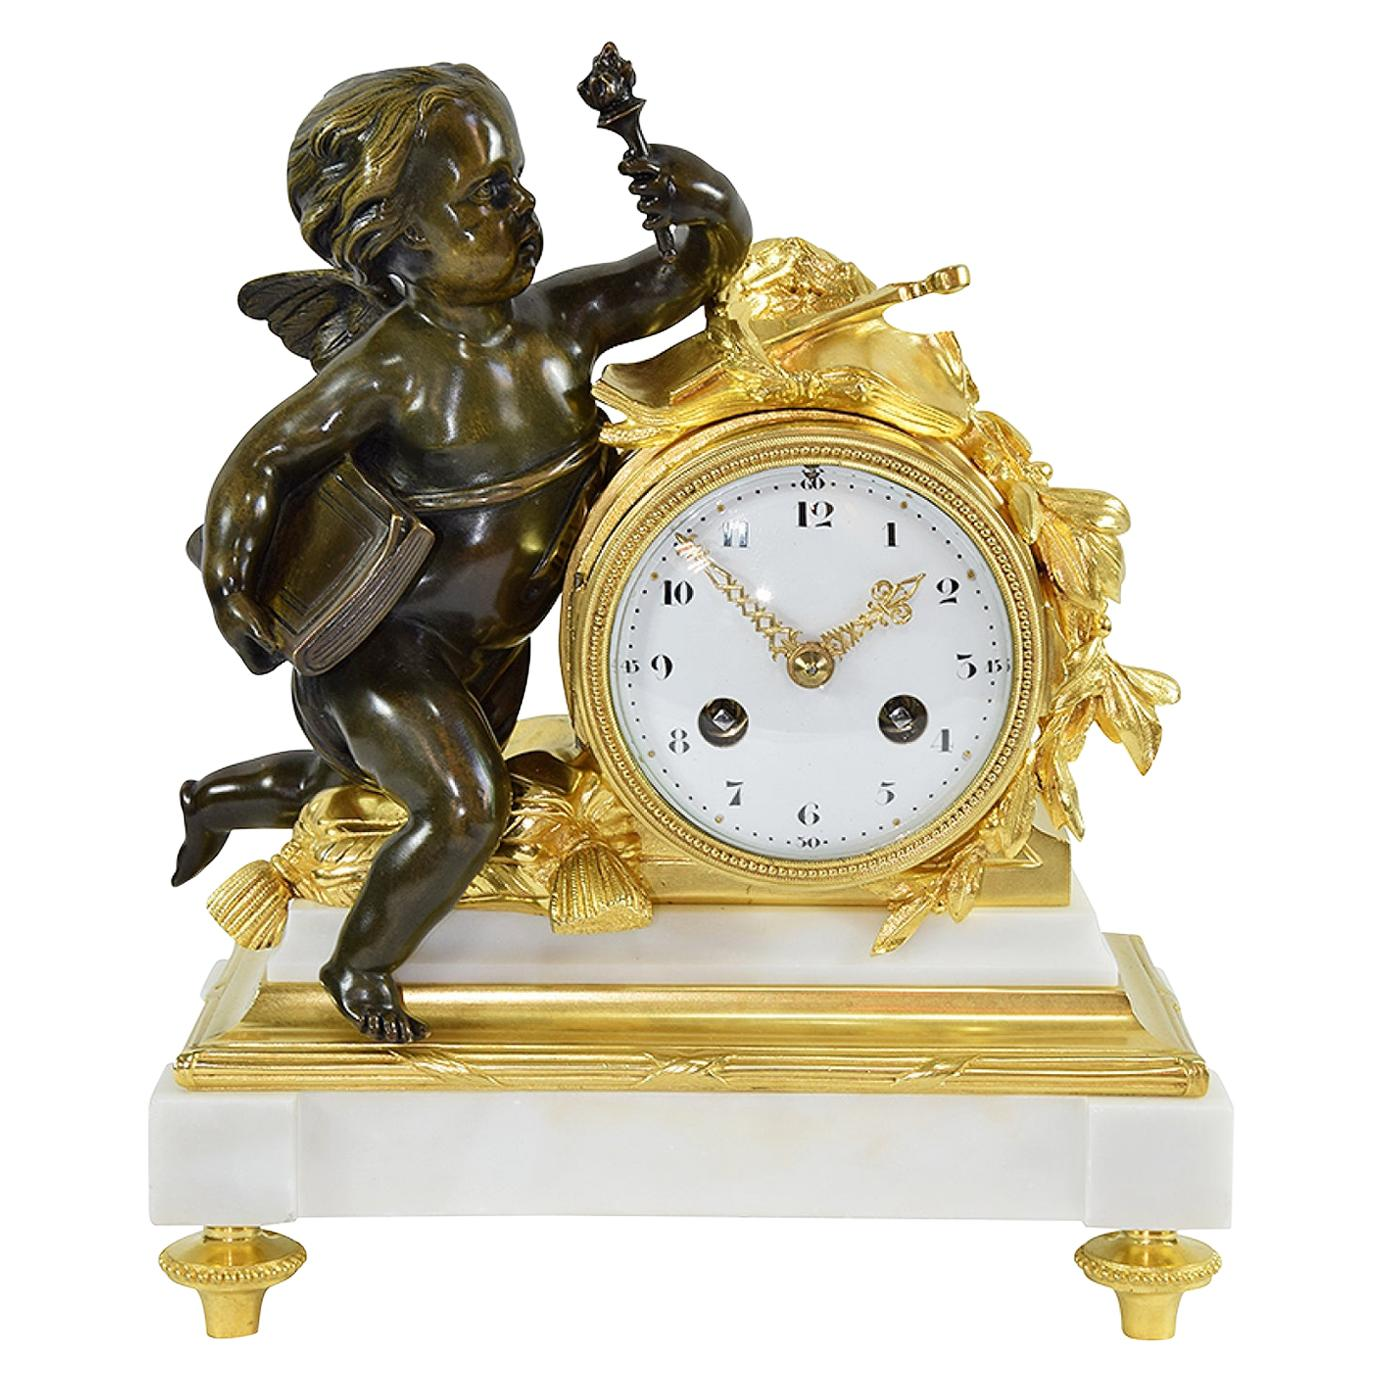 Magnificent Small Clock in the Louis XVI Style